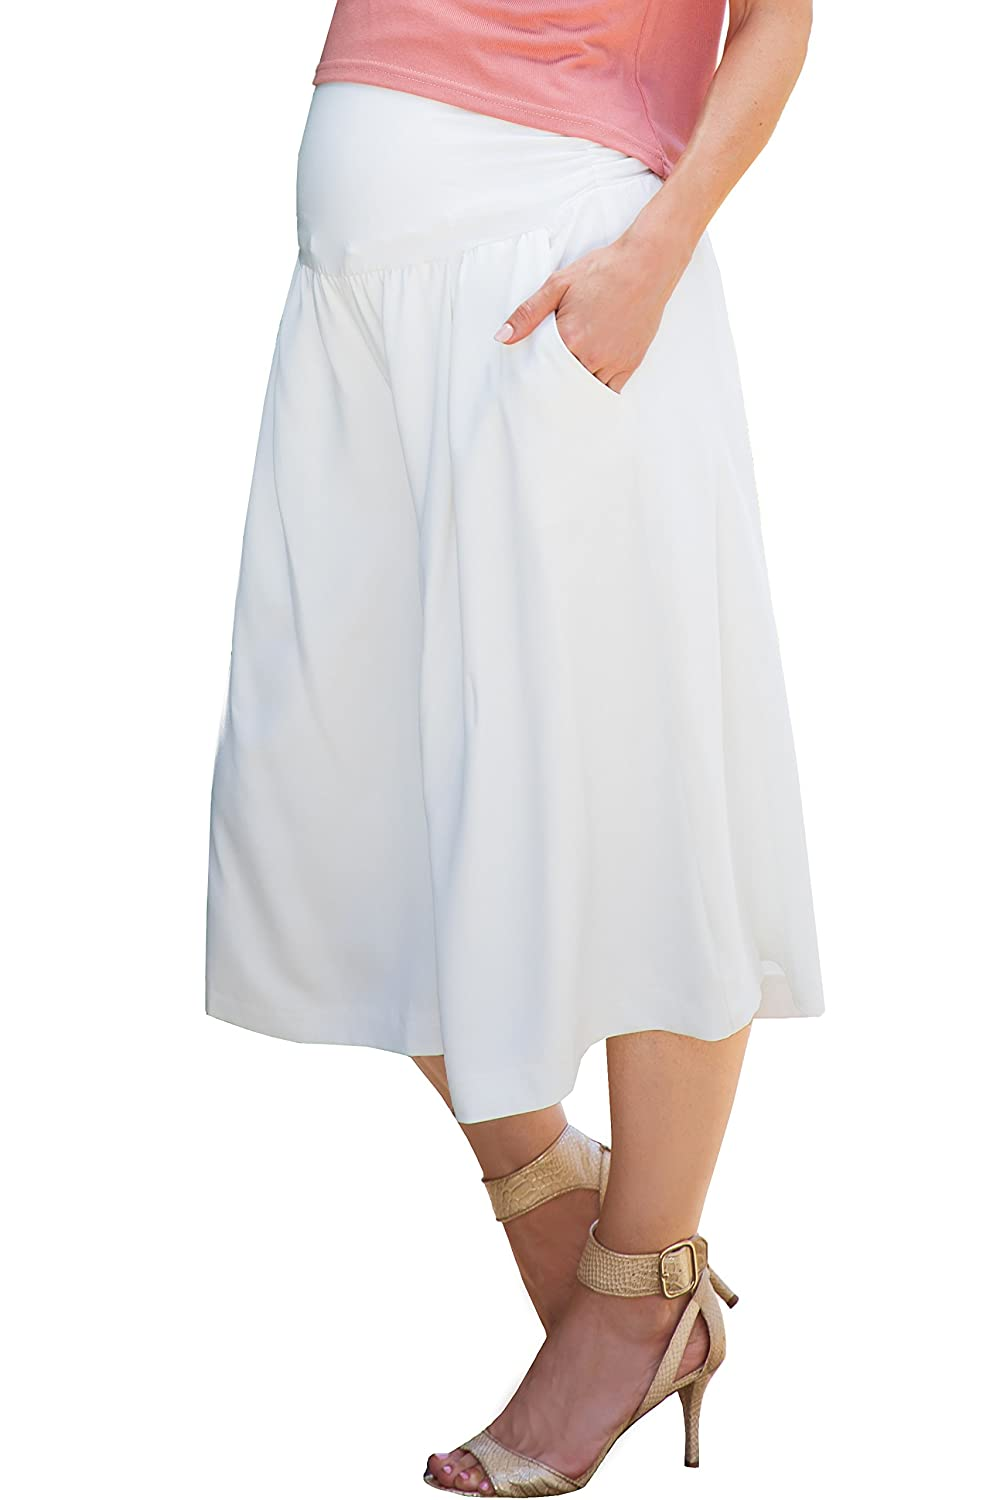 Sweet Mommy Maternity Women's Elastic Wide Leg Culottes Pants Sweet Mommy Co. Ltd sp7011